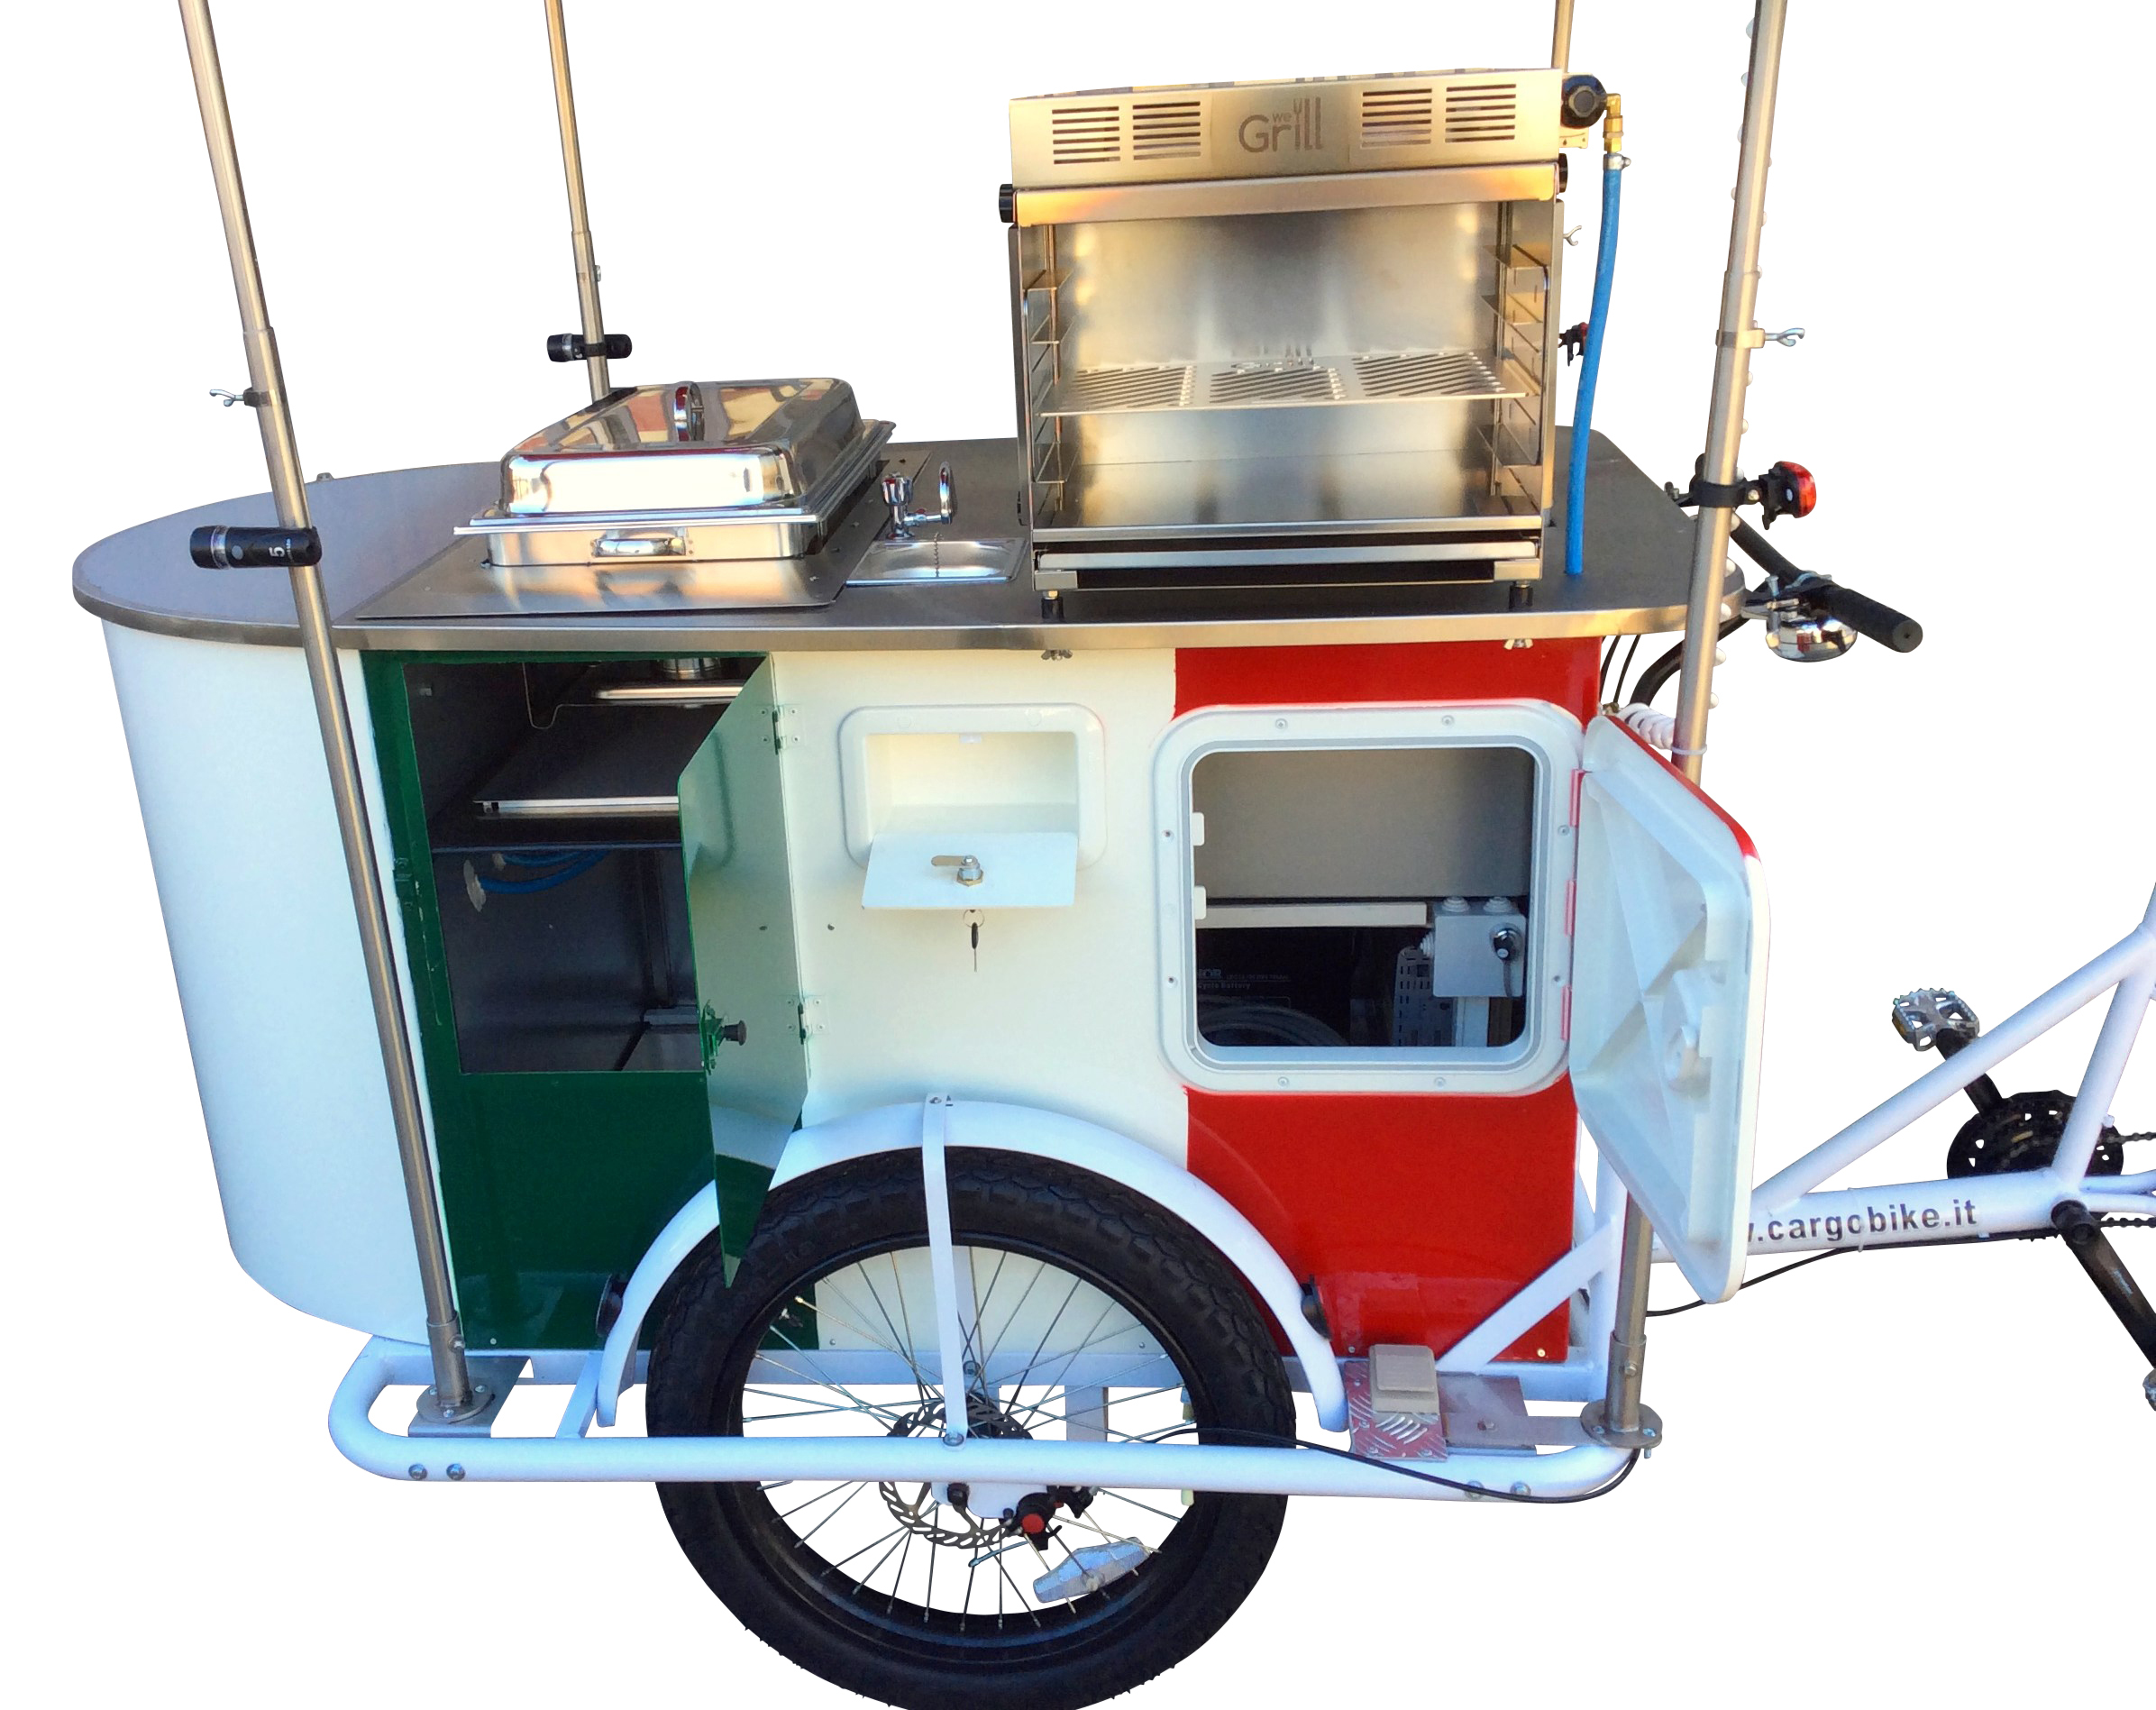 STREET_FOOD_GRILL_REVIVAL_TRICICLO_CARGO_BIKE_12